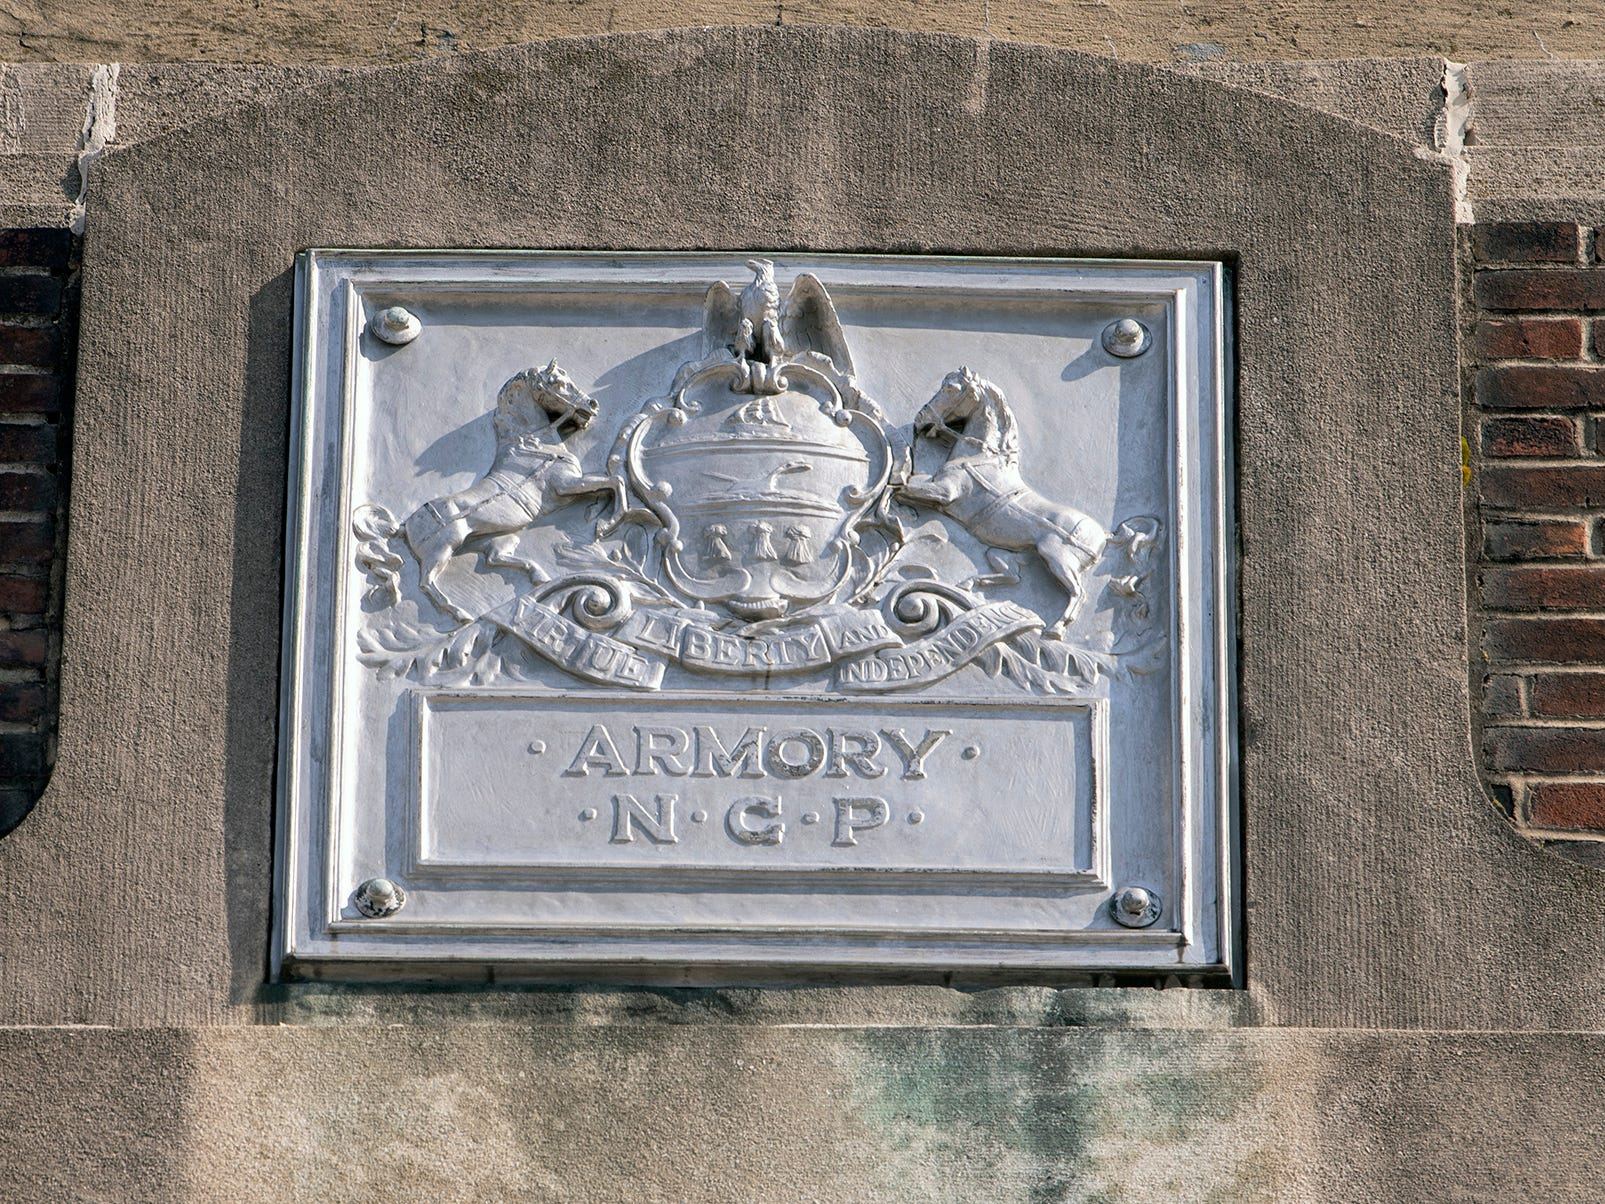 A metal plate is fastened to the facade of the building. The York Armory, a brick fortress built in 1913 once used by the Pa. National Guard, will soon be transformed into Keystone Kidspace, an educational experience for families. It's expected to open in 2020.